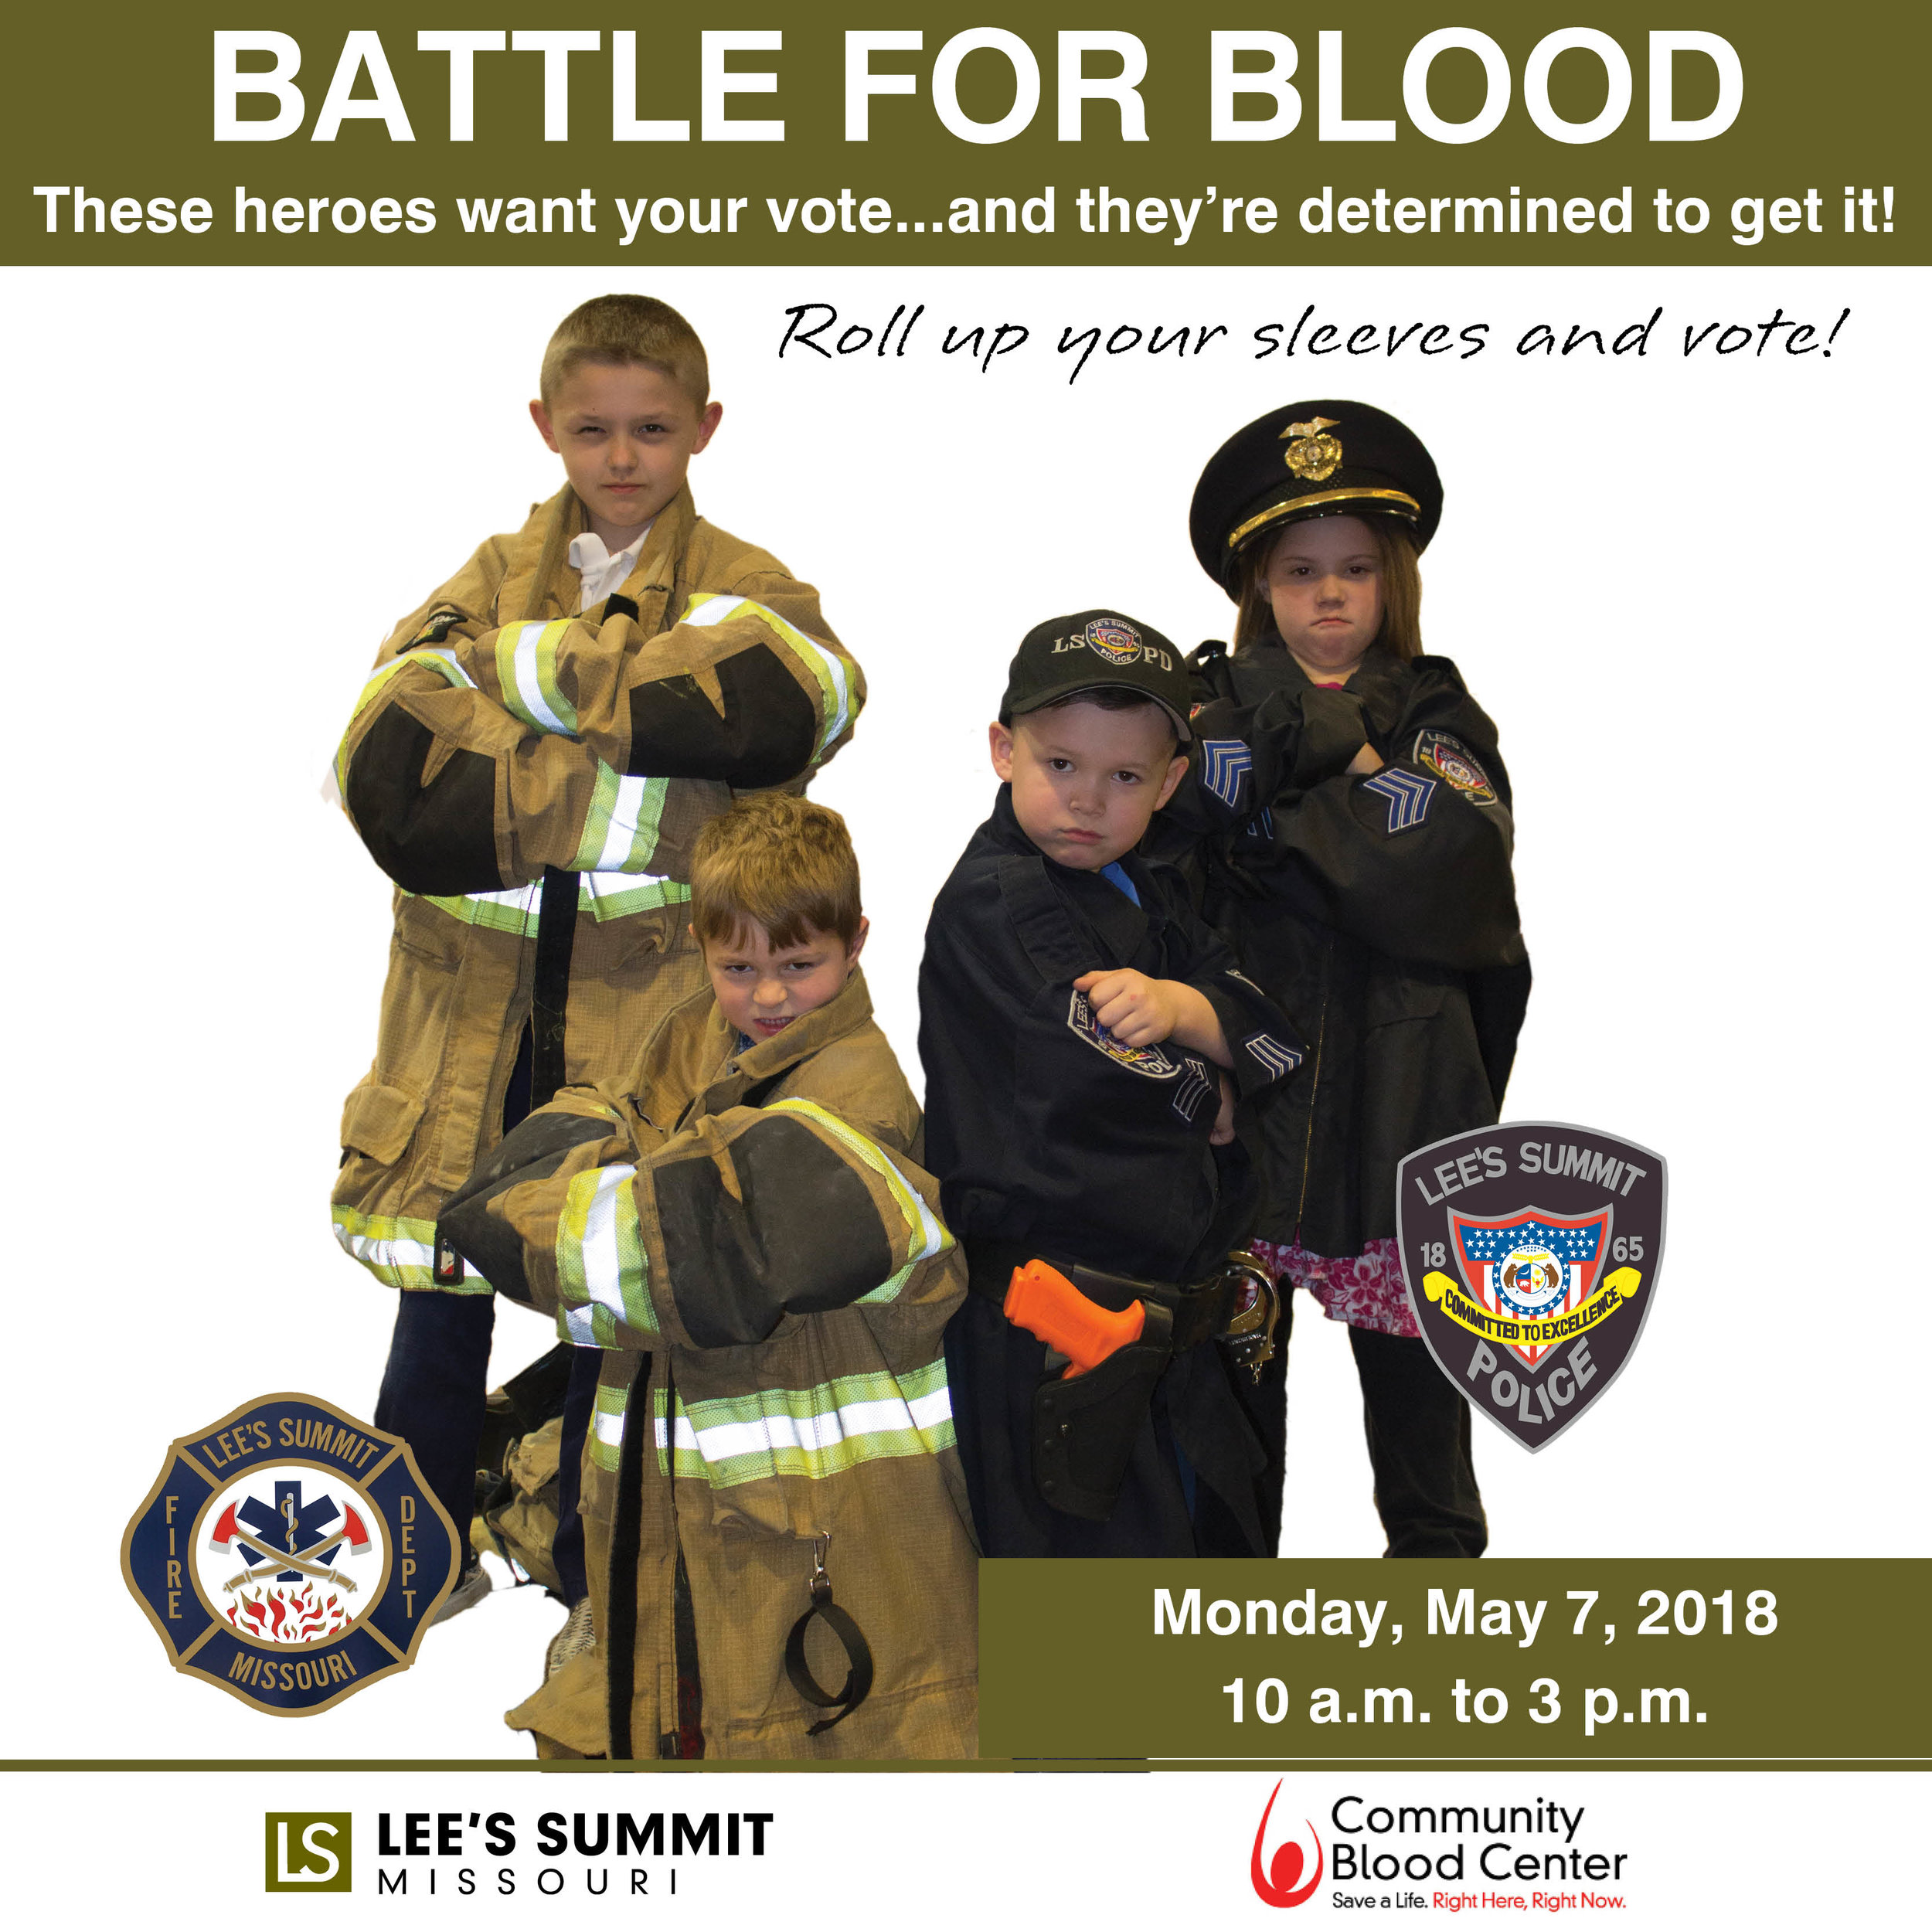 Battle for Blood image May 2018.jpg